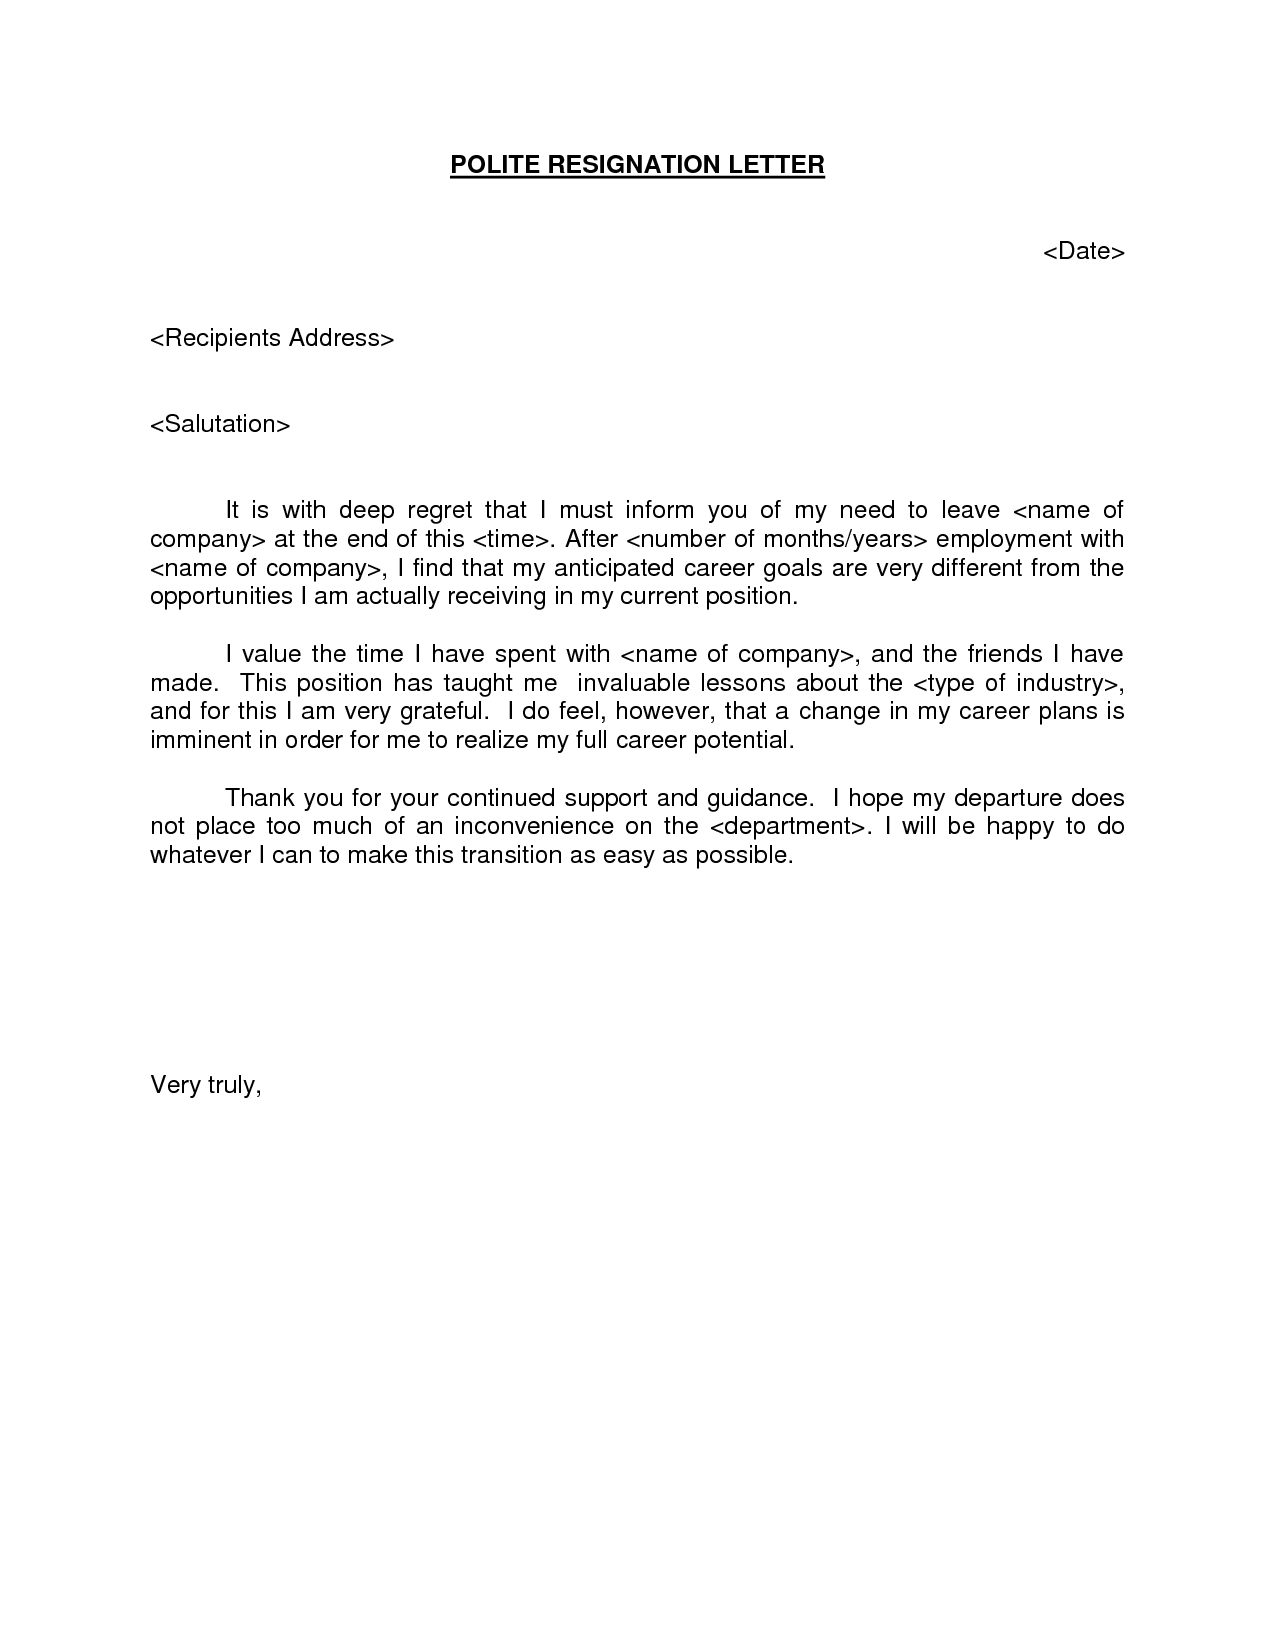 how to write a proper resignation letter images letter of polite resignation letter bestdealformoneywriting a letter of resignation email letter sample